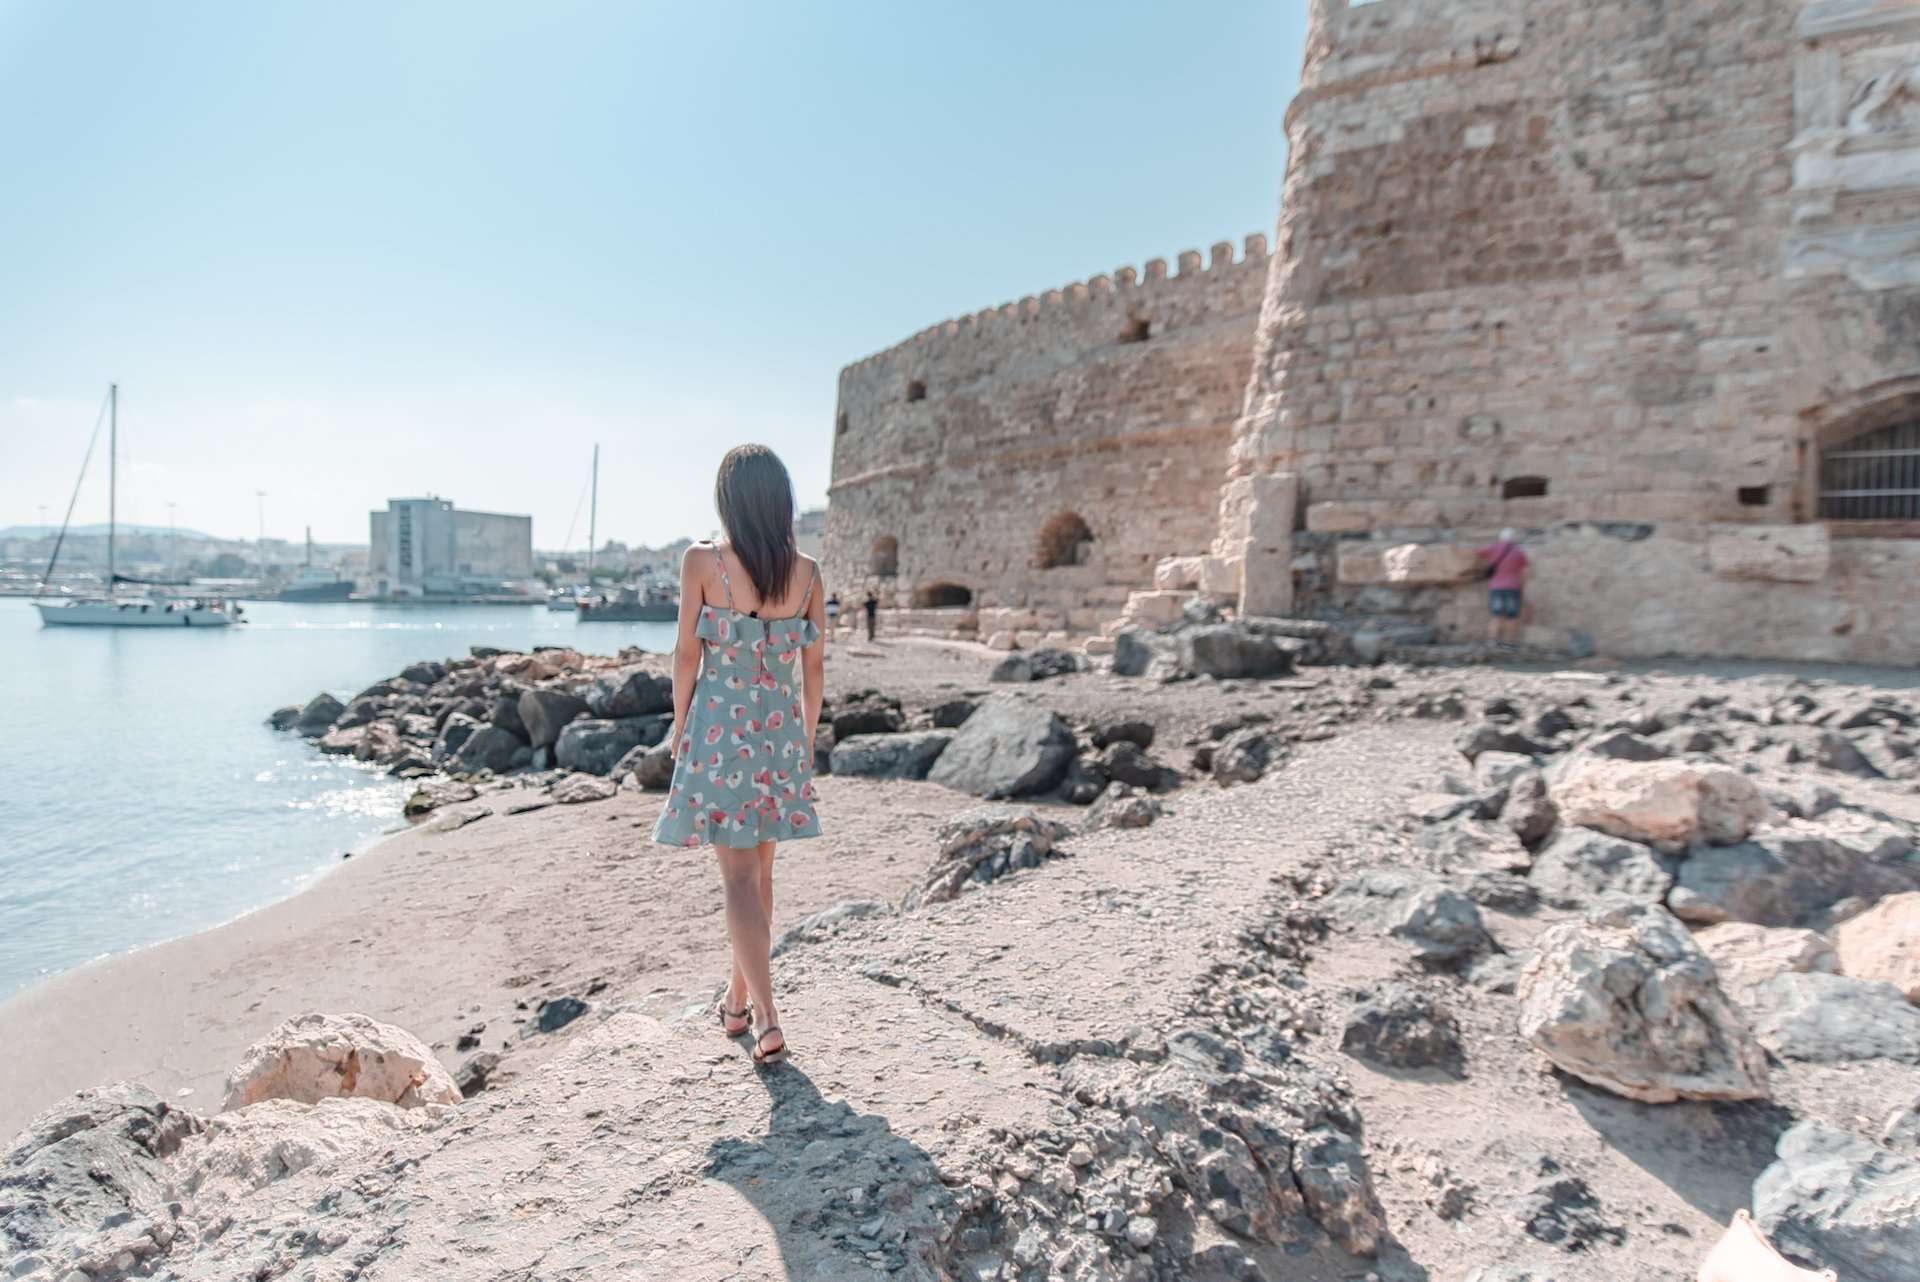 Heraklion: 30 minutes from Agia Pelagia